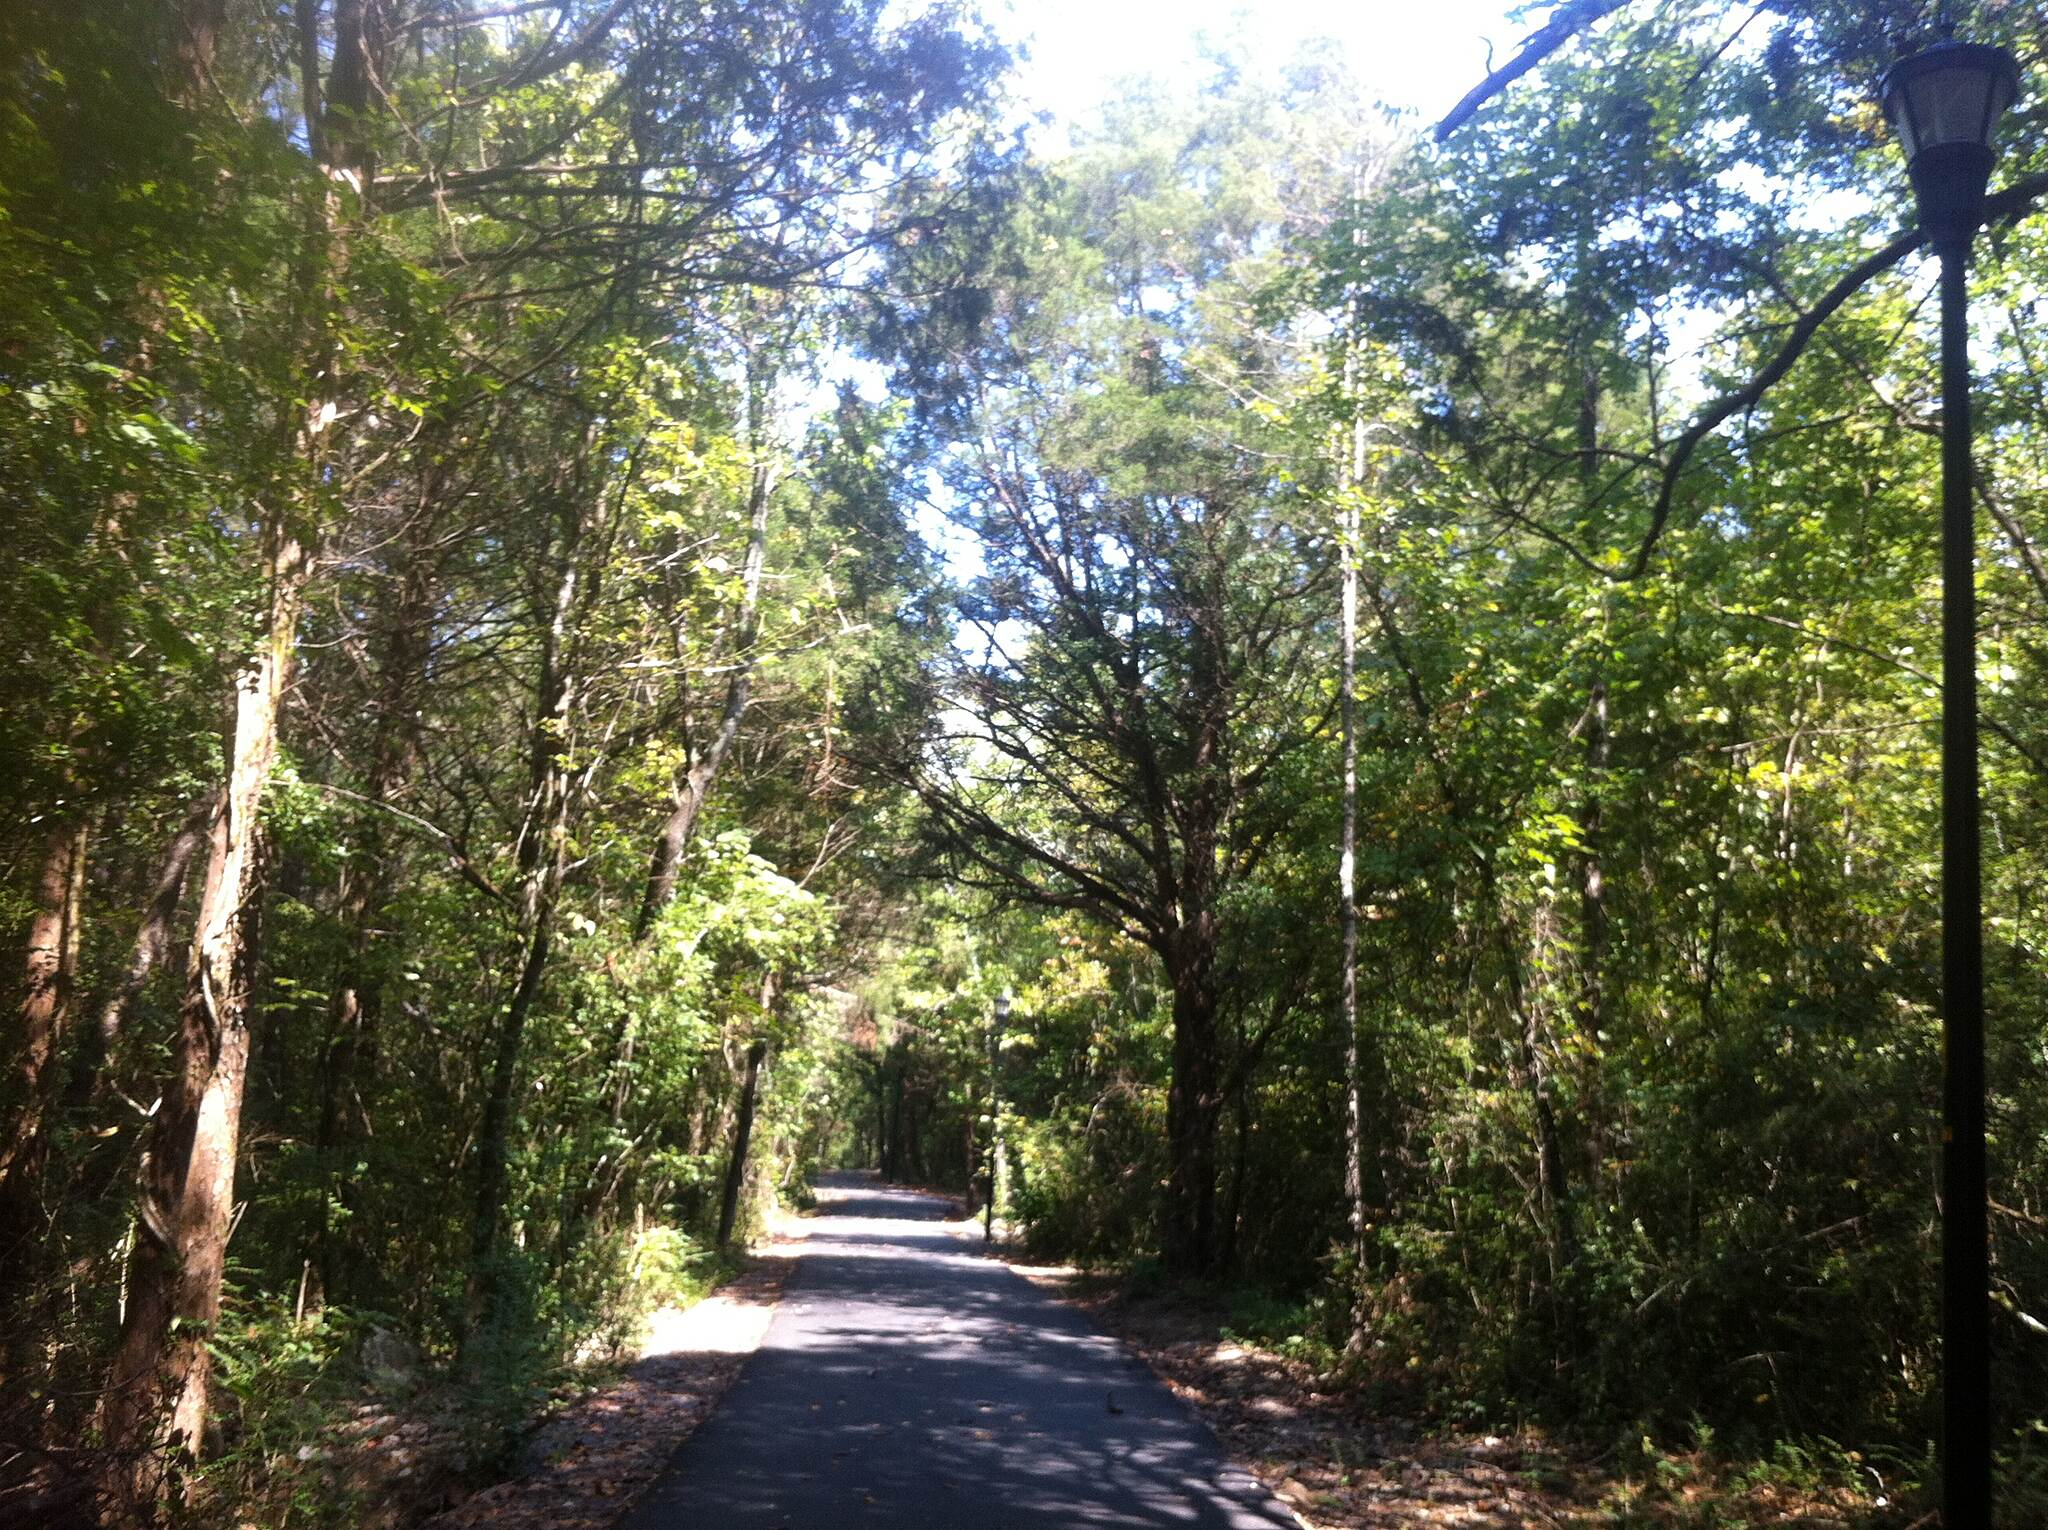 Cleveland/Bradley County Greenway greenway trail